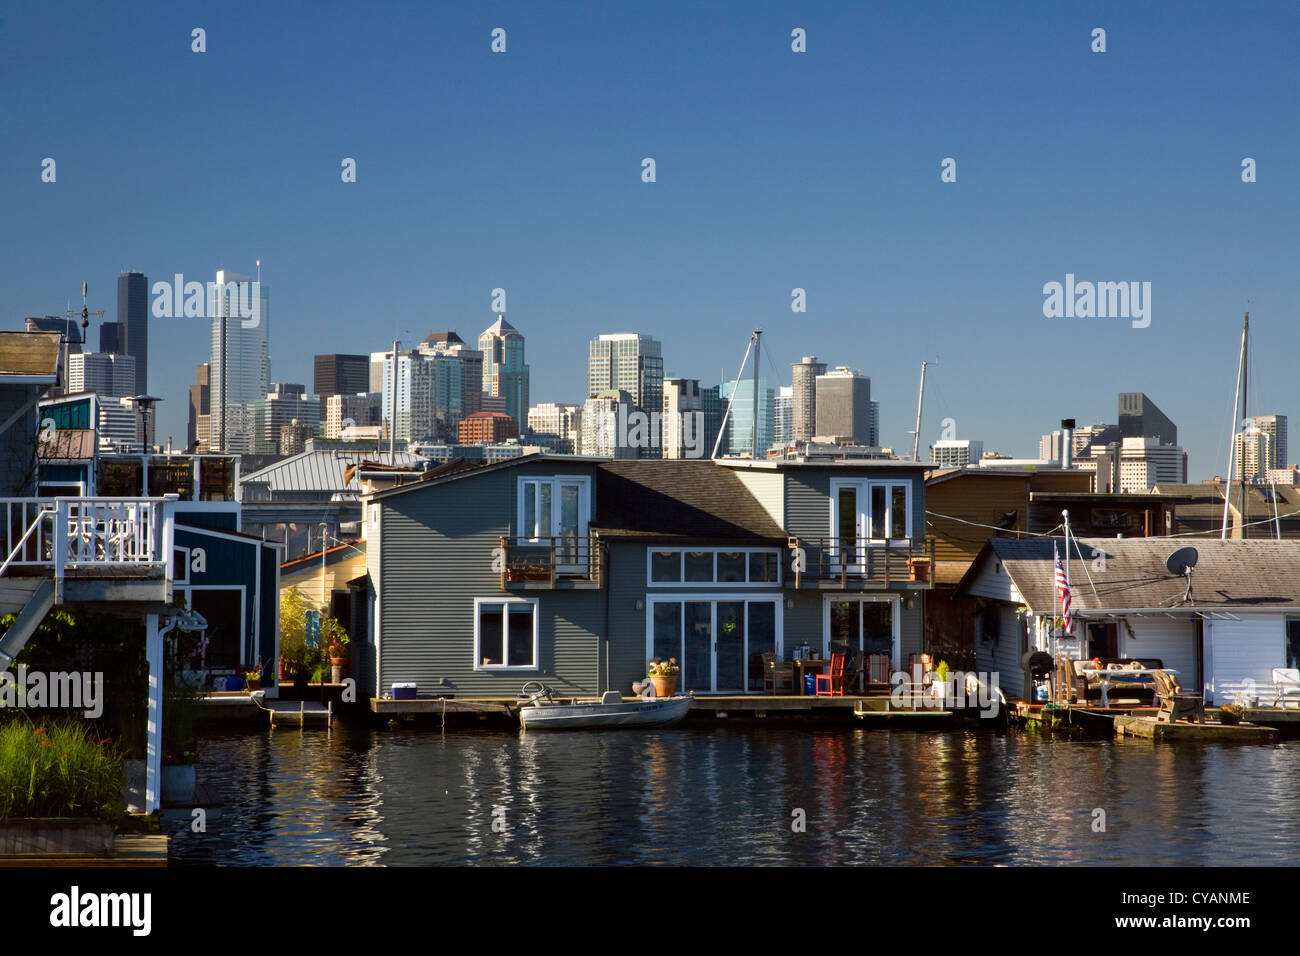 WA04517-00...WASHINGTON - House boat community on Lake Union with the highrises of Seattle in the background. - Stock Image